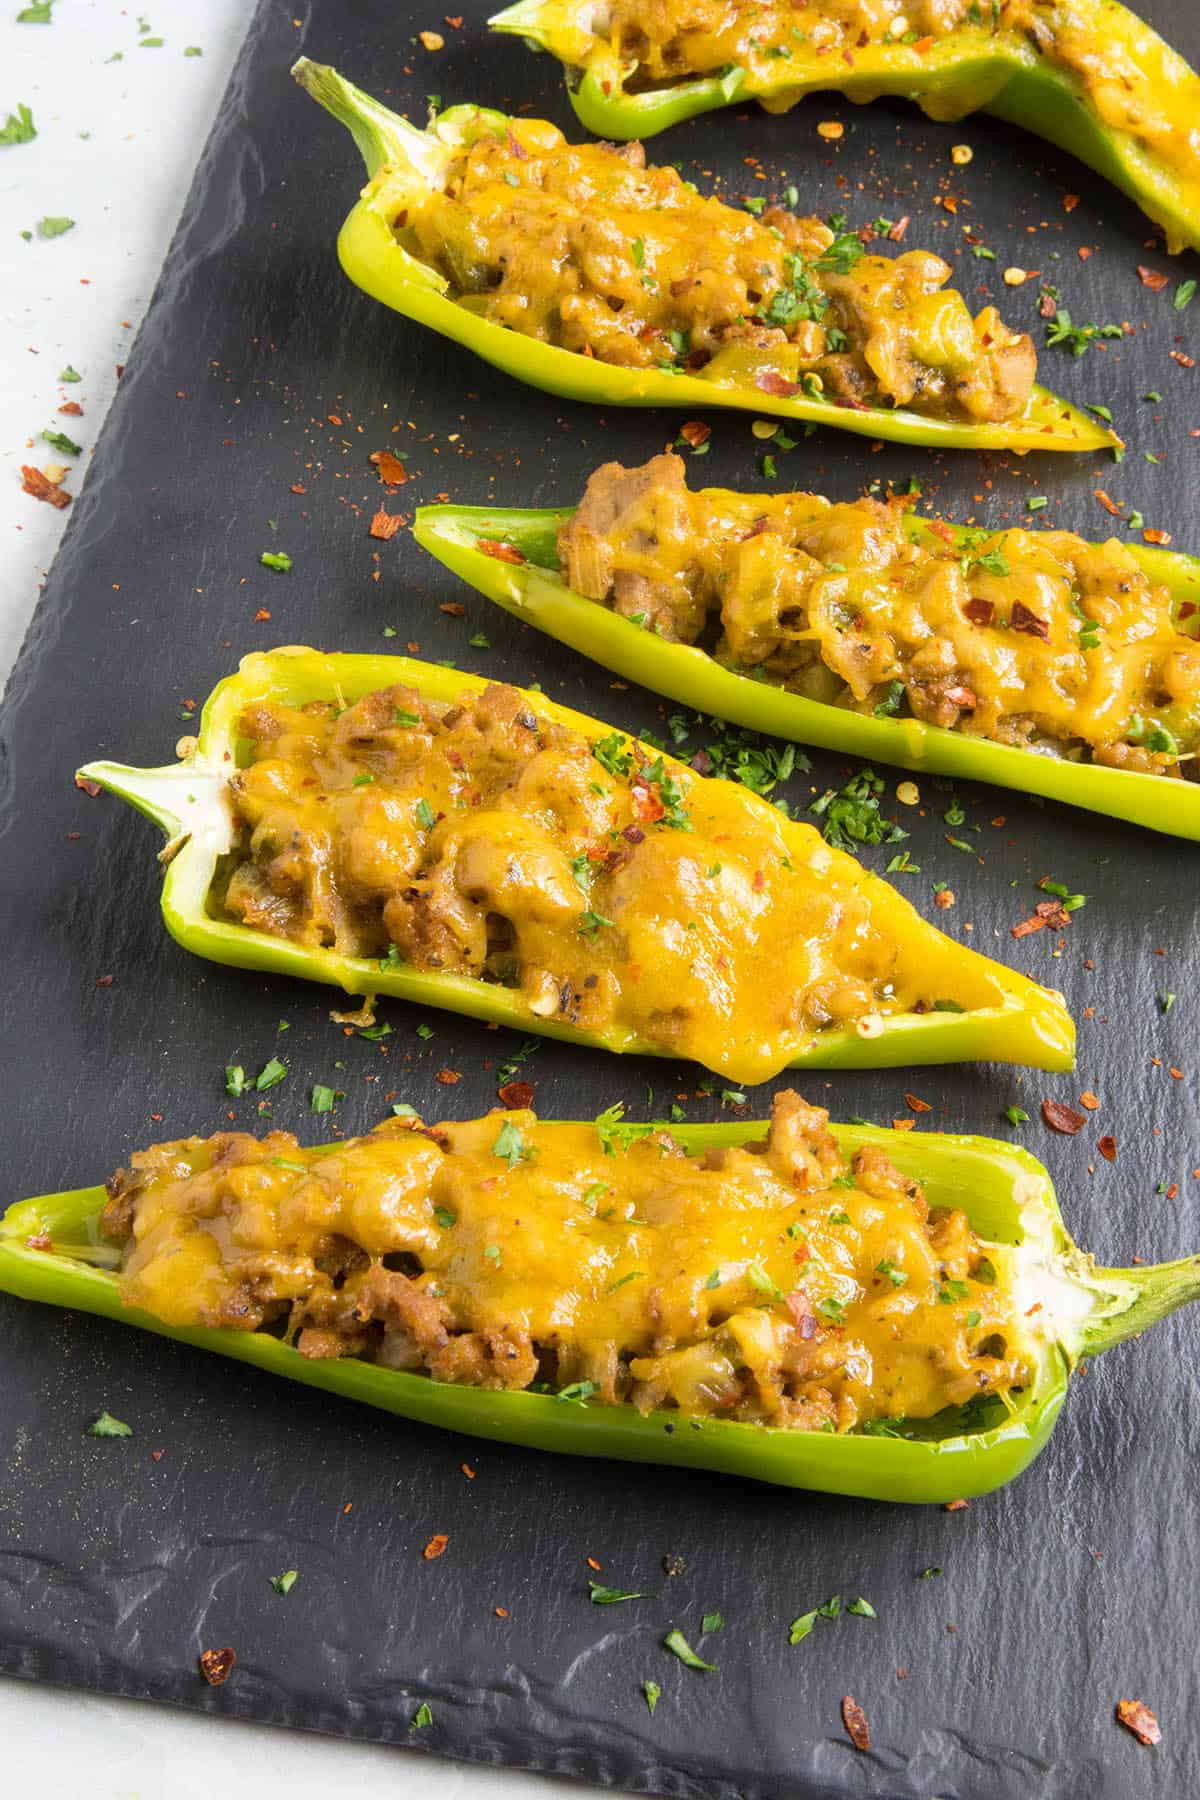 Turkey and Cheddar Stuffed Anaheim Peppers, ready to serve